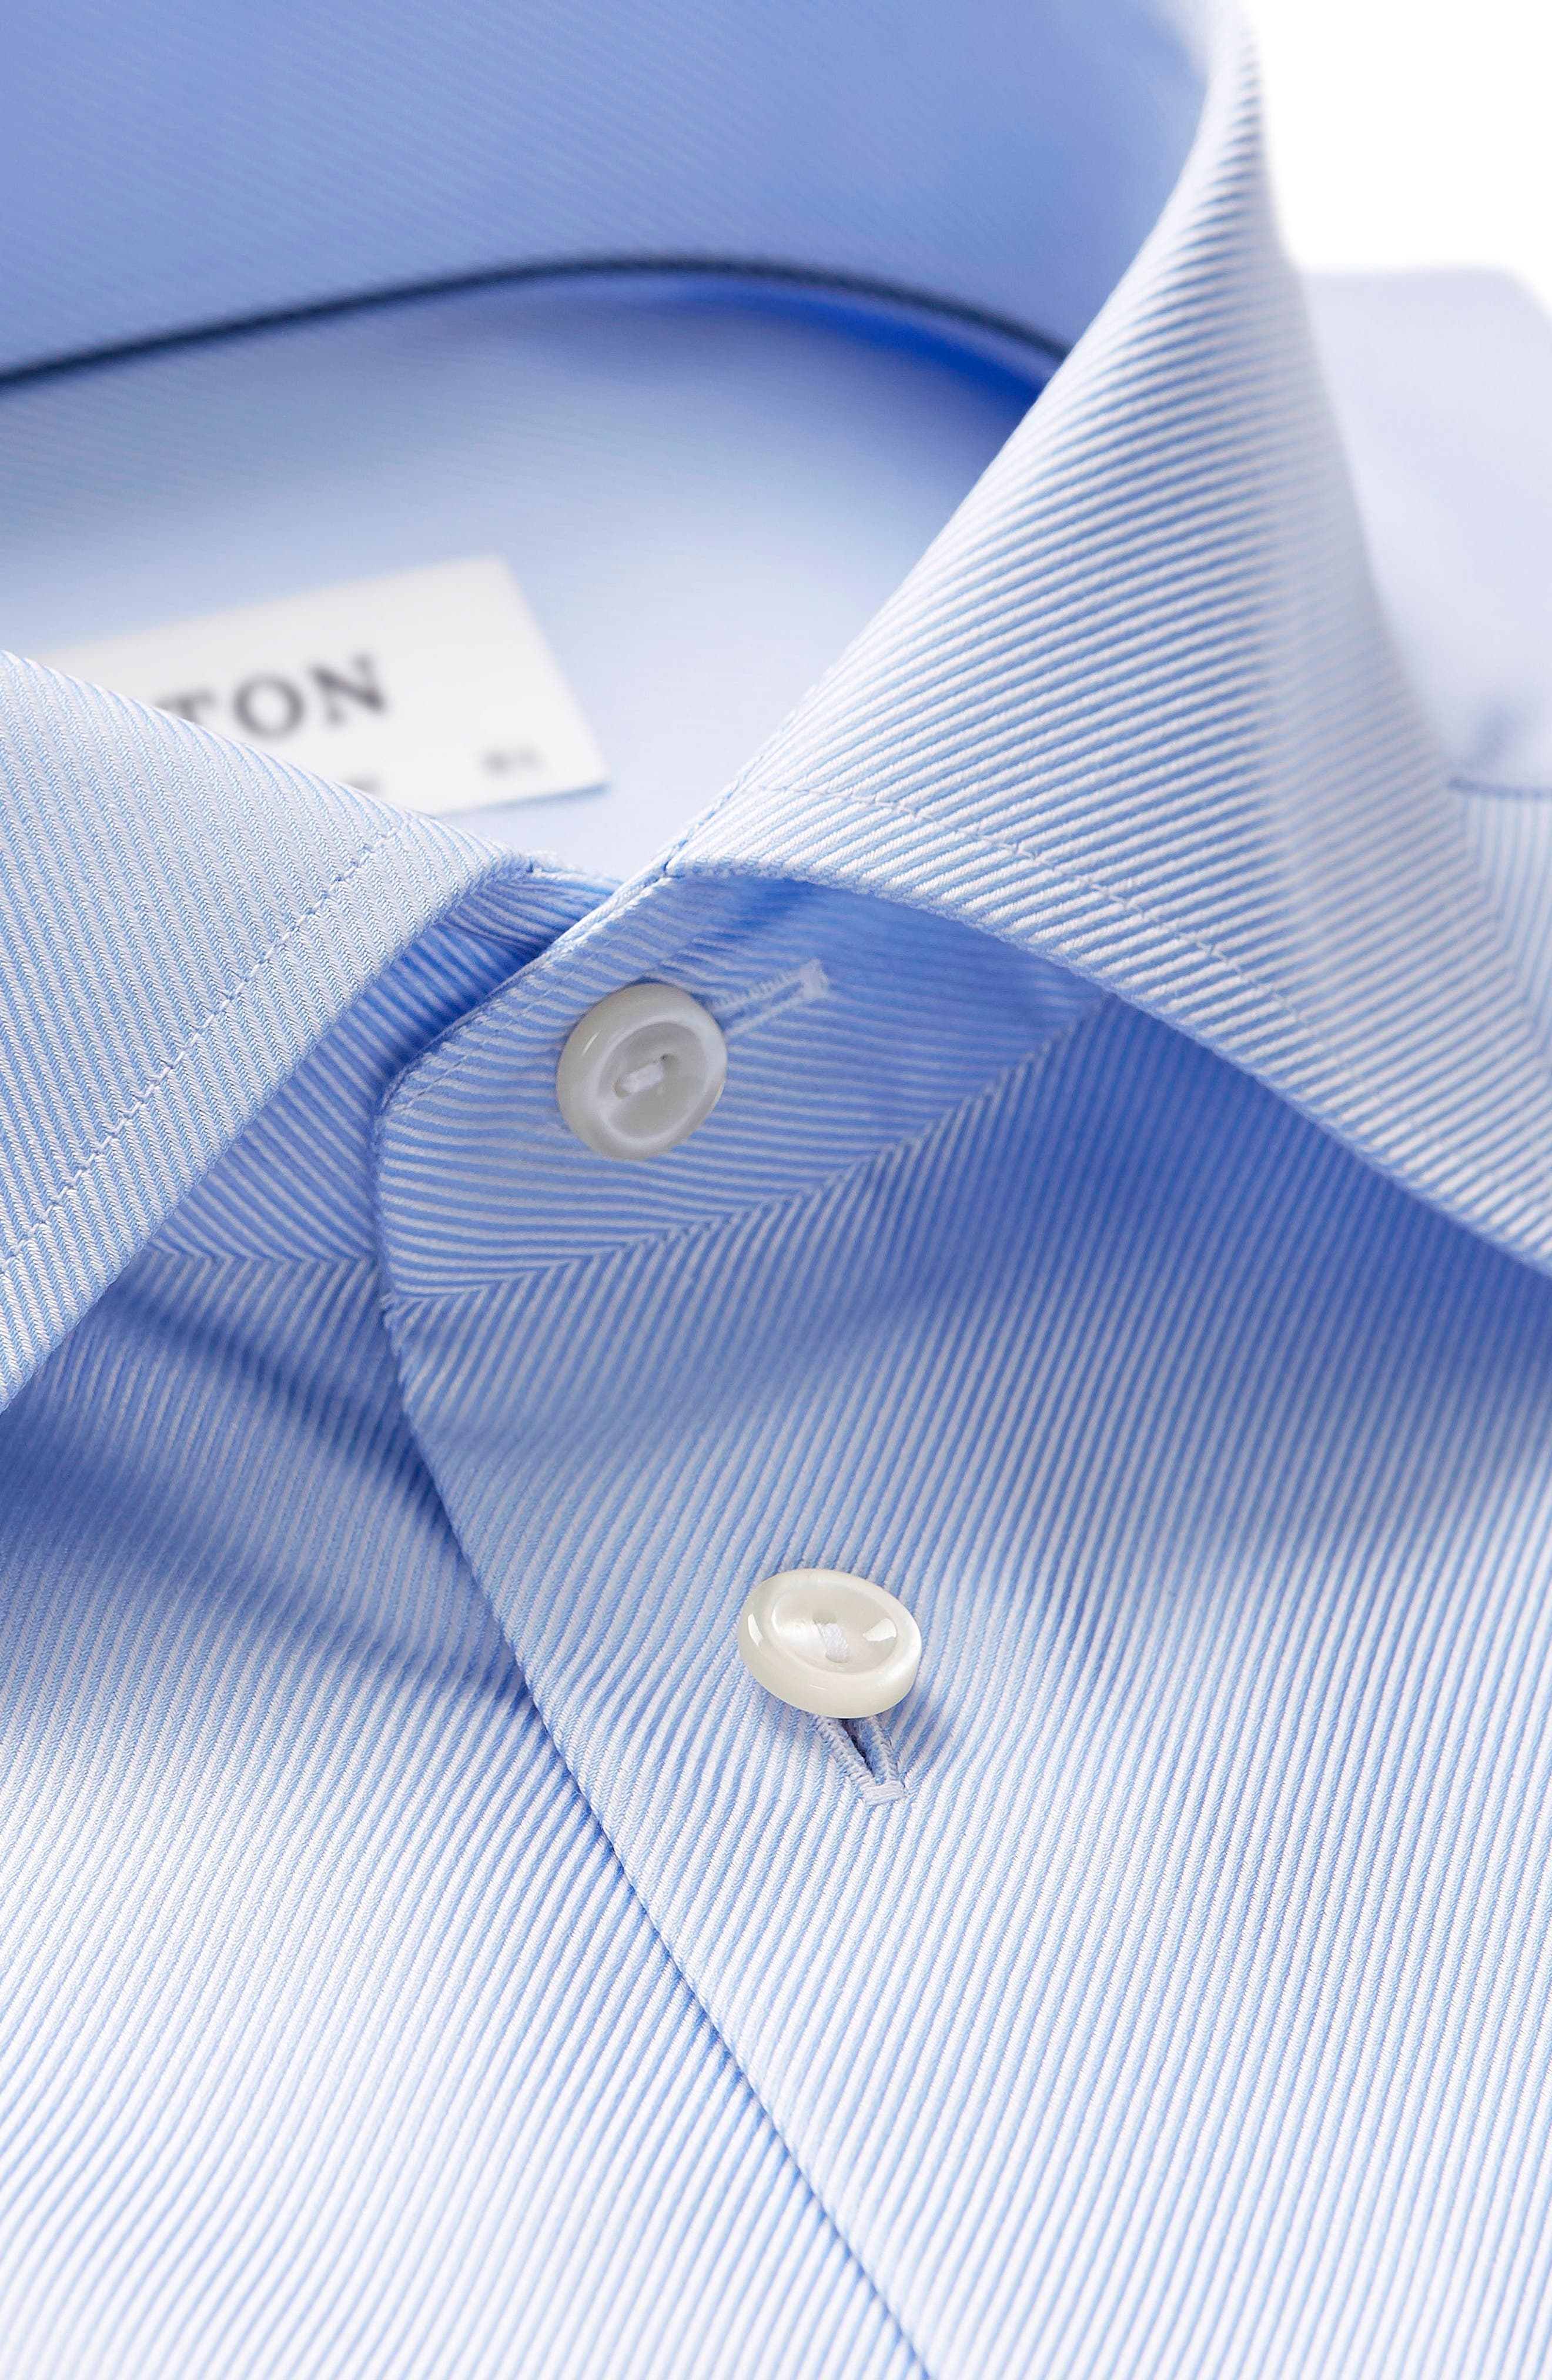 Contemporary Fit Cavalry Twill Dress Shirt,                             Alternate thumbnail 2, color,                             Blue